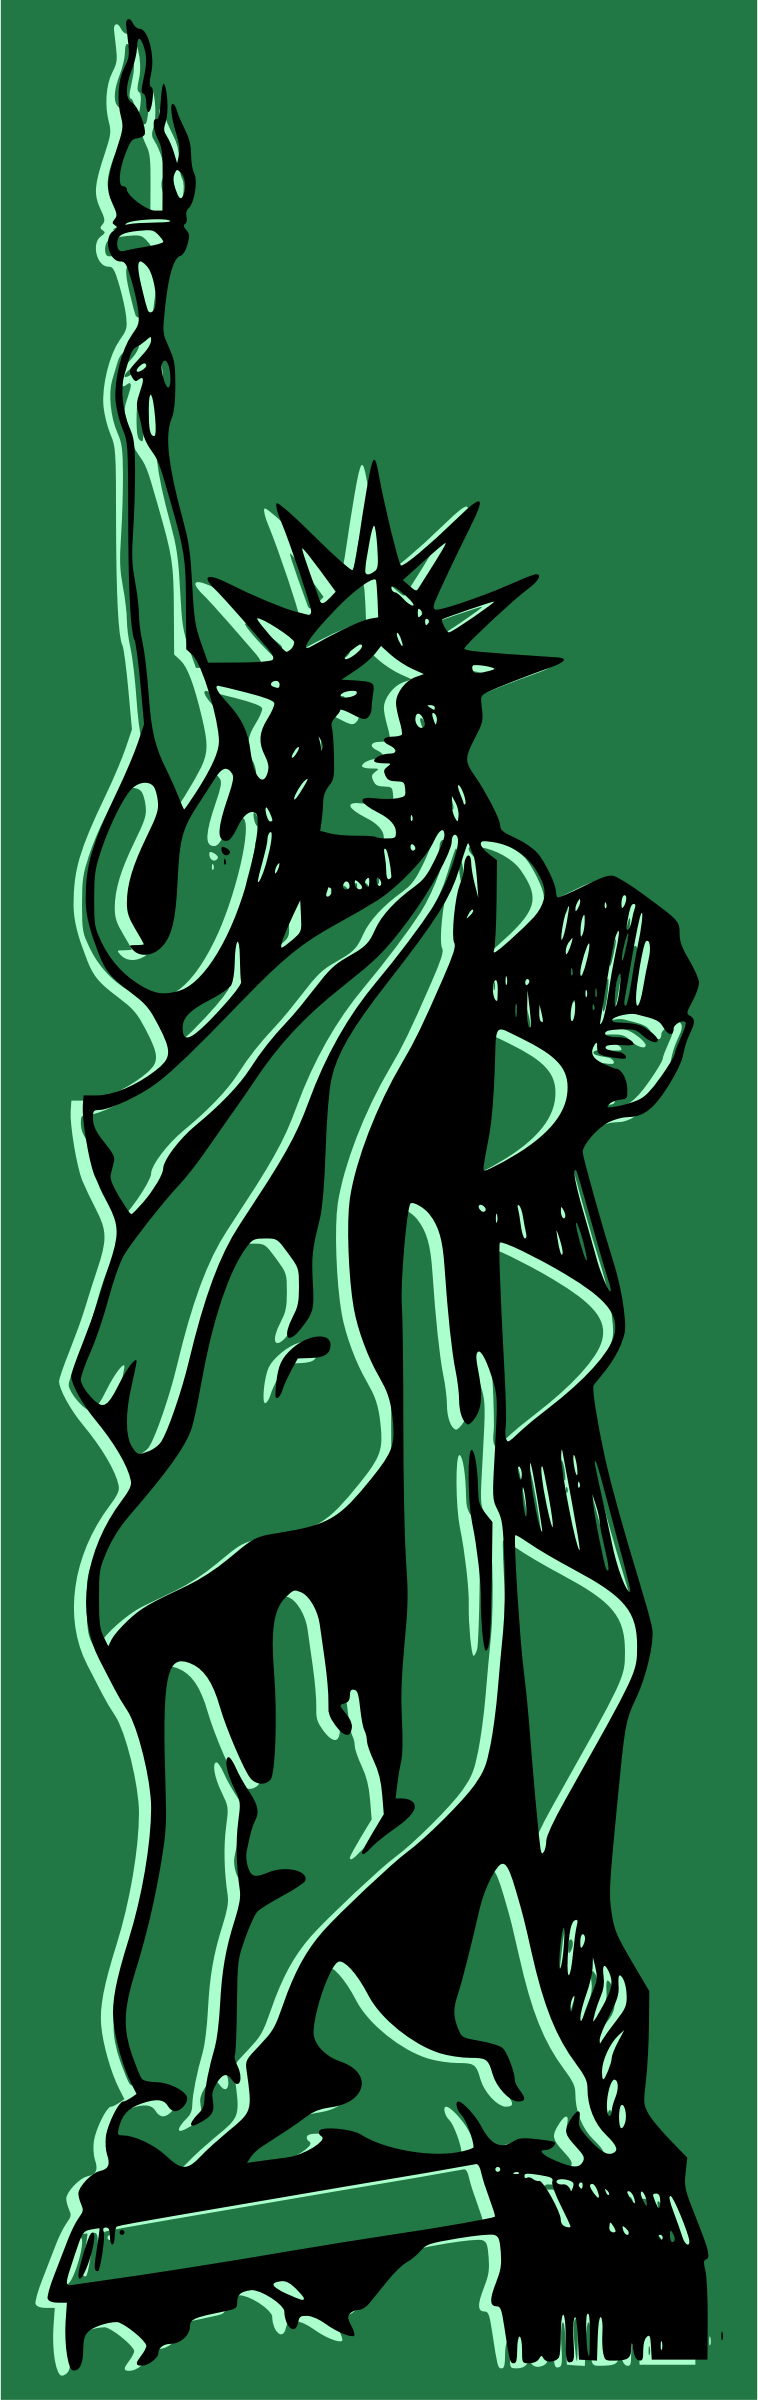 Green Statue of Liberty by j4p4n